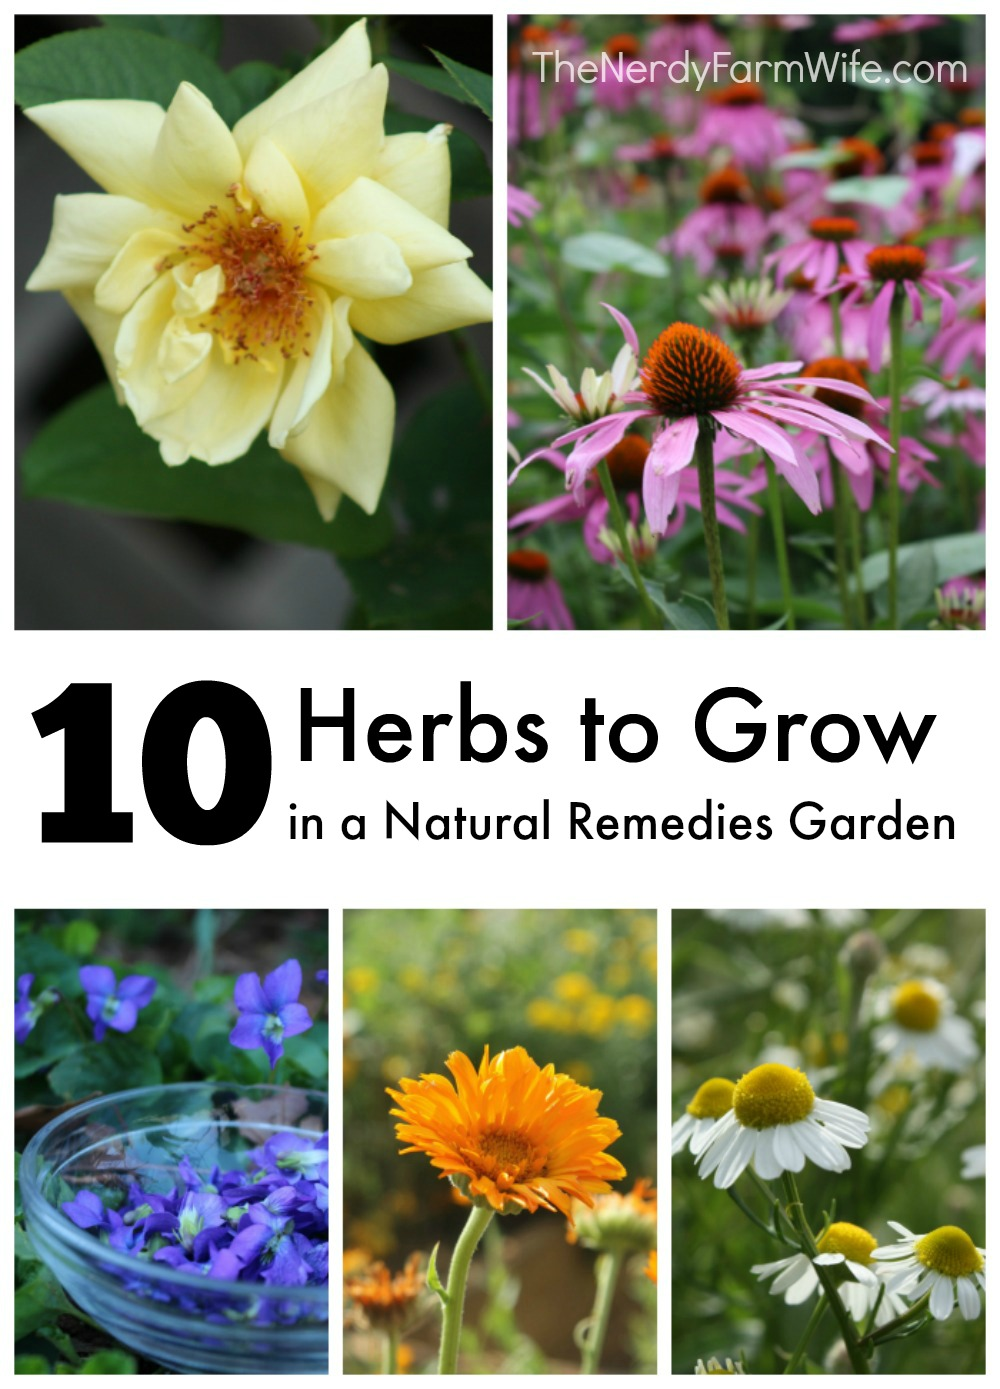 10 herbs to grow in a natural remedies garden. Black Bedroom Furniture Sets. Home Design Ideas